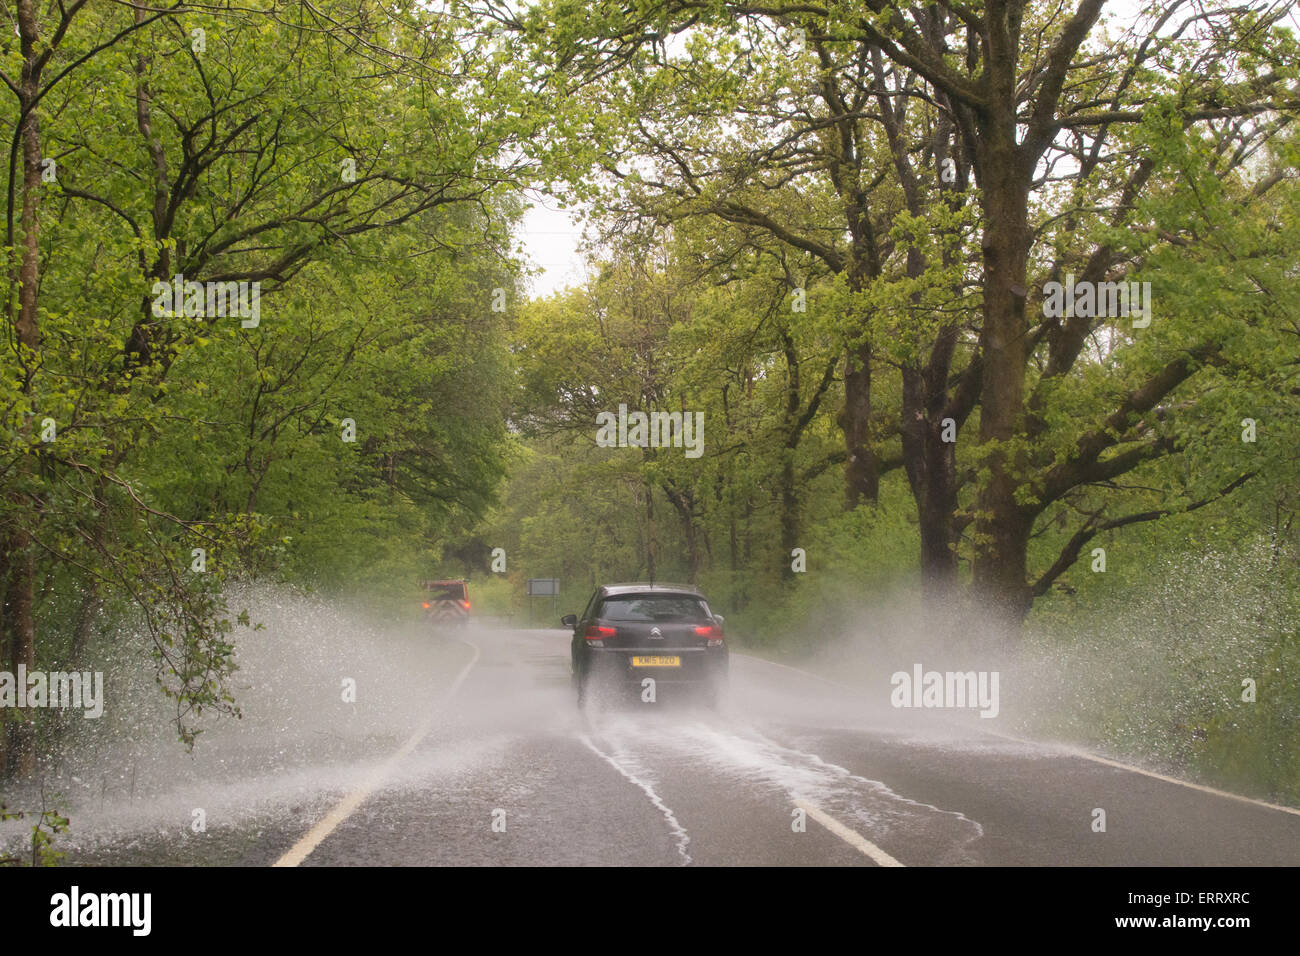 Car splashing through large puddle on country road in Scotland after heavy rain - Stock Image